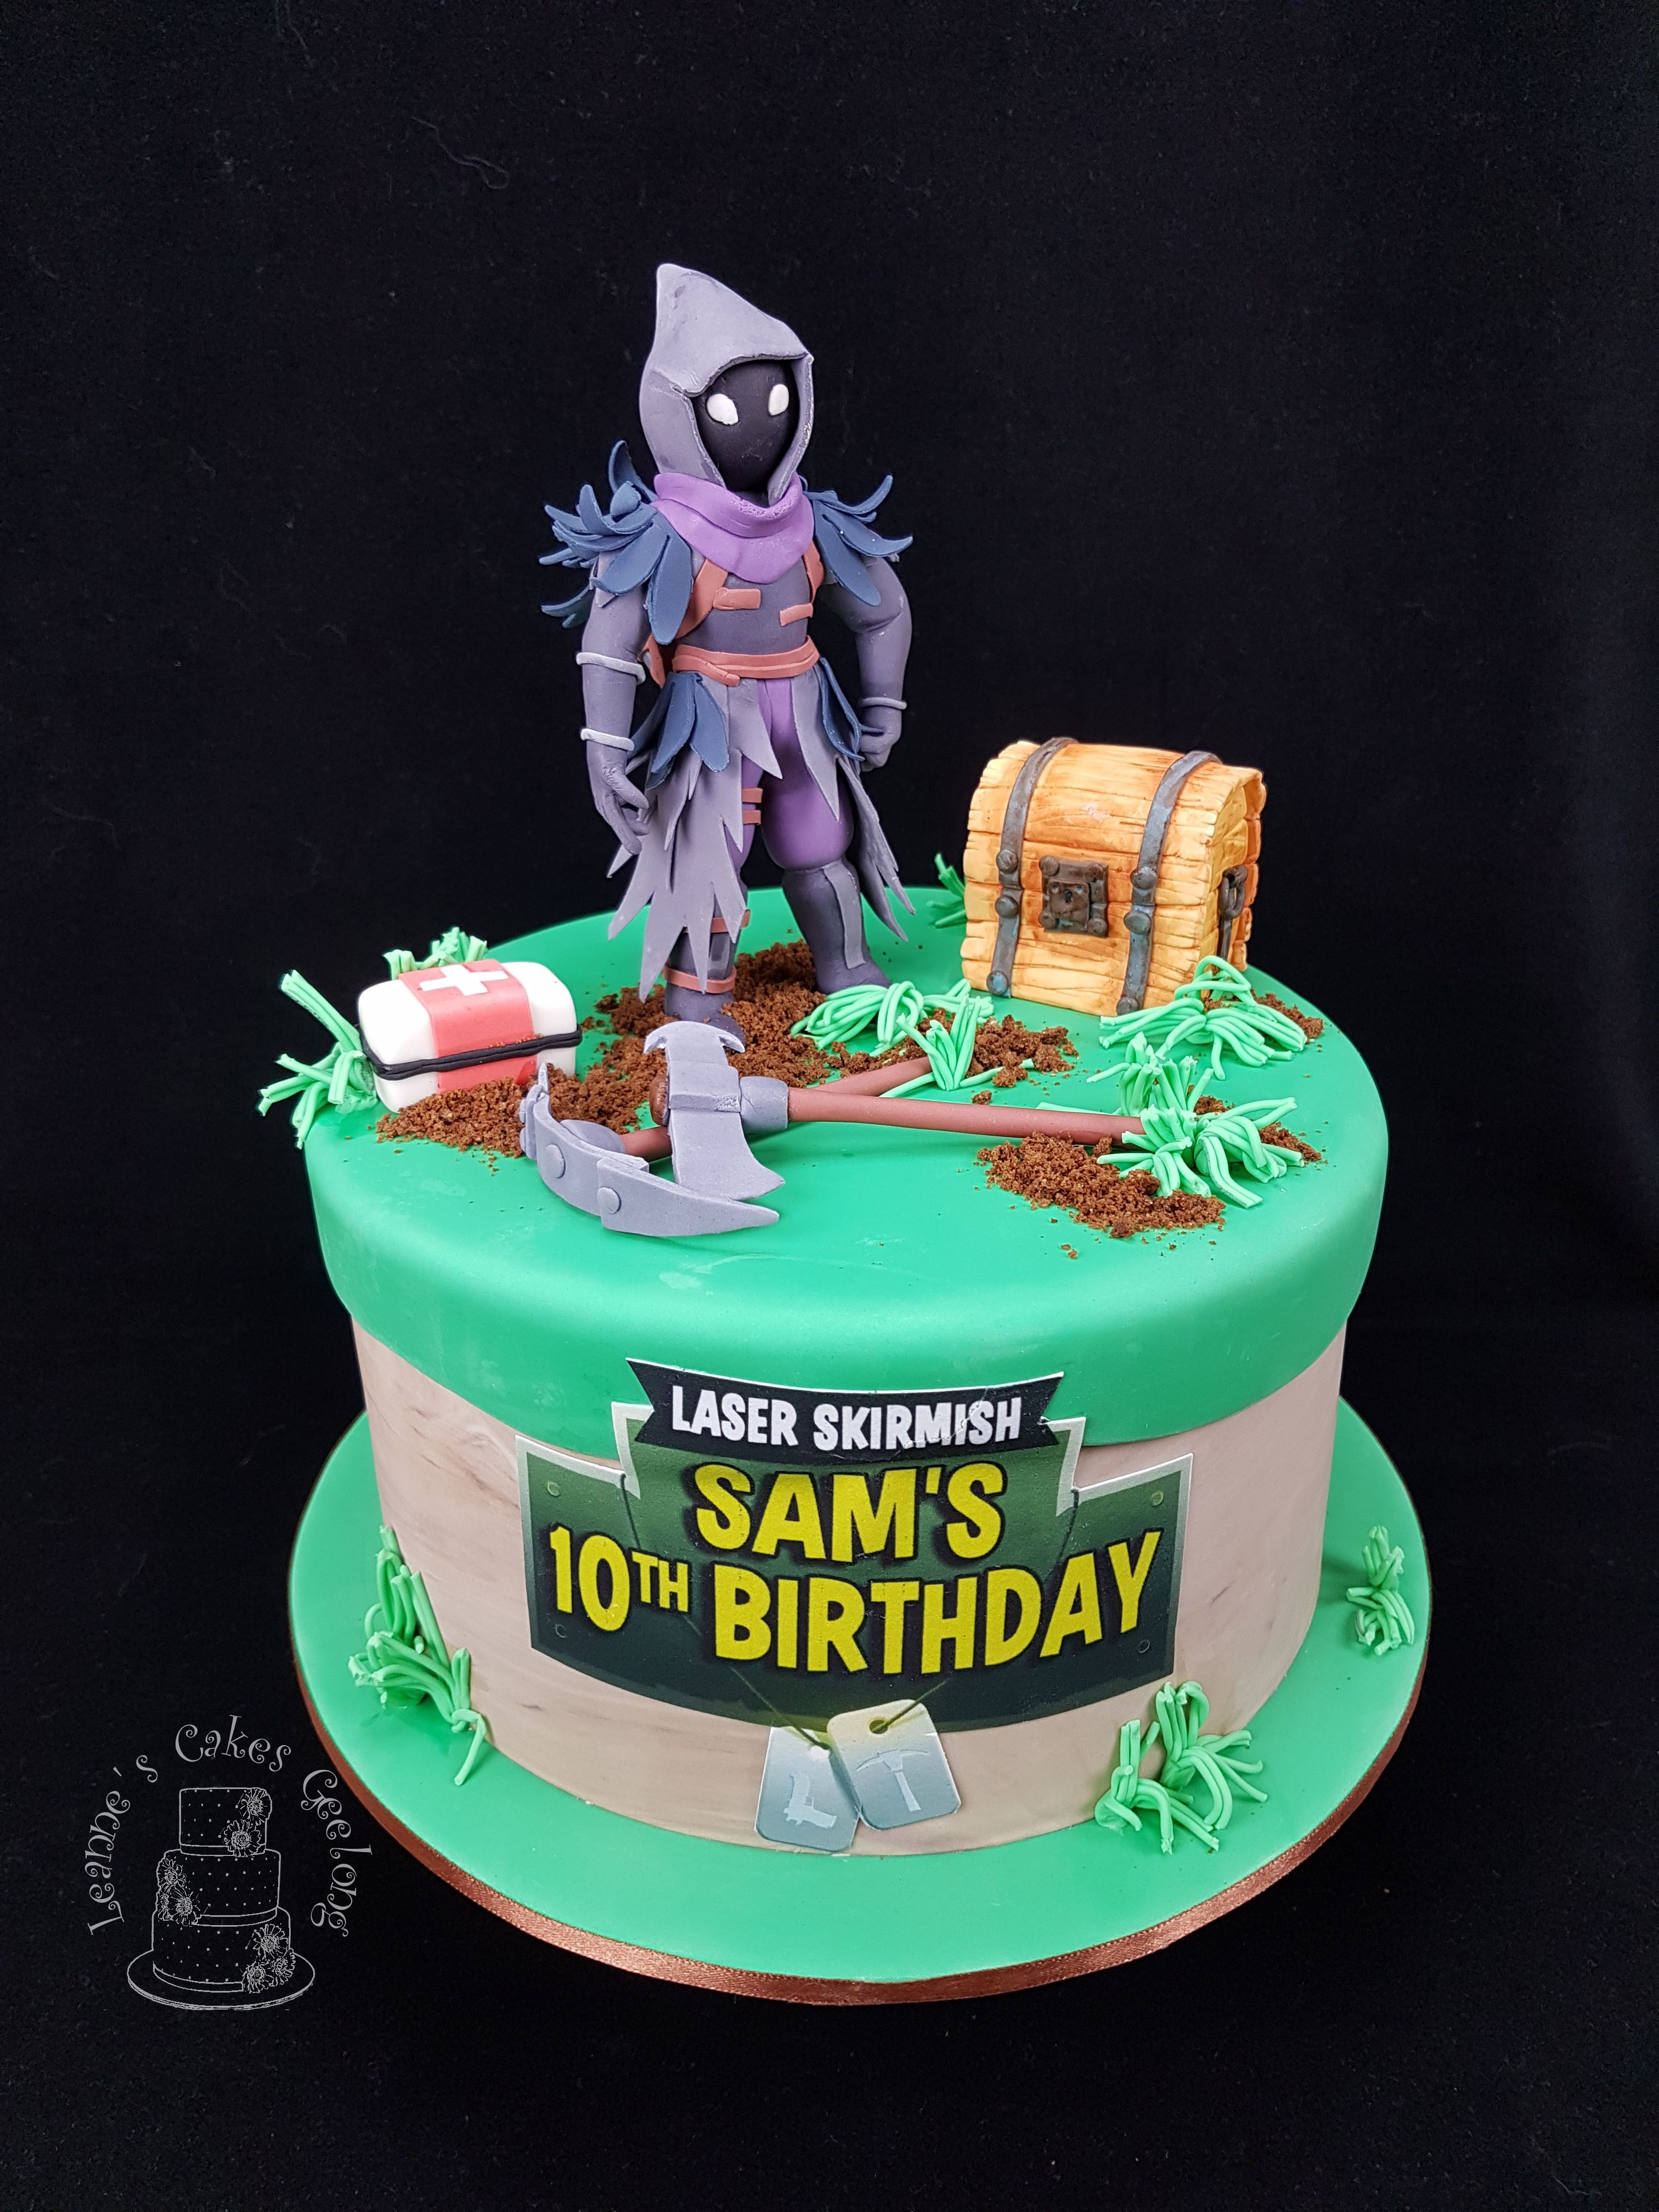 Fortnite Battle Royale This is a similar cake to the one